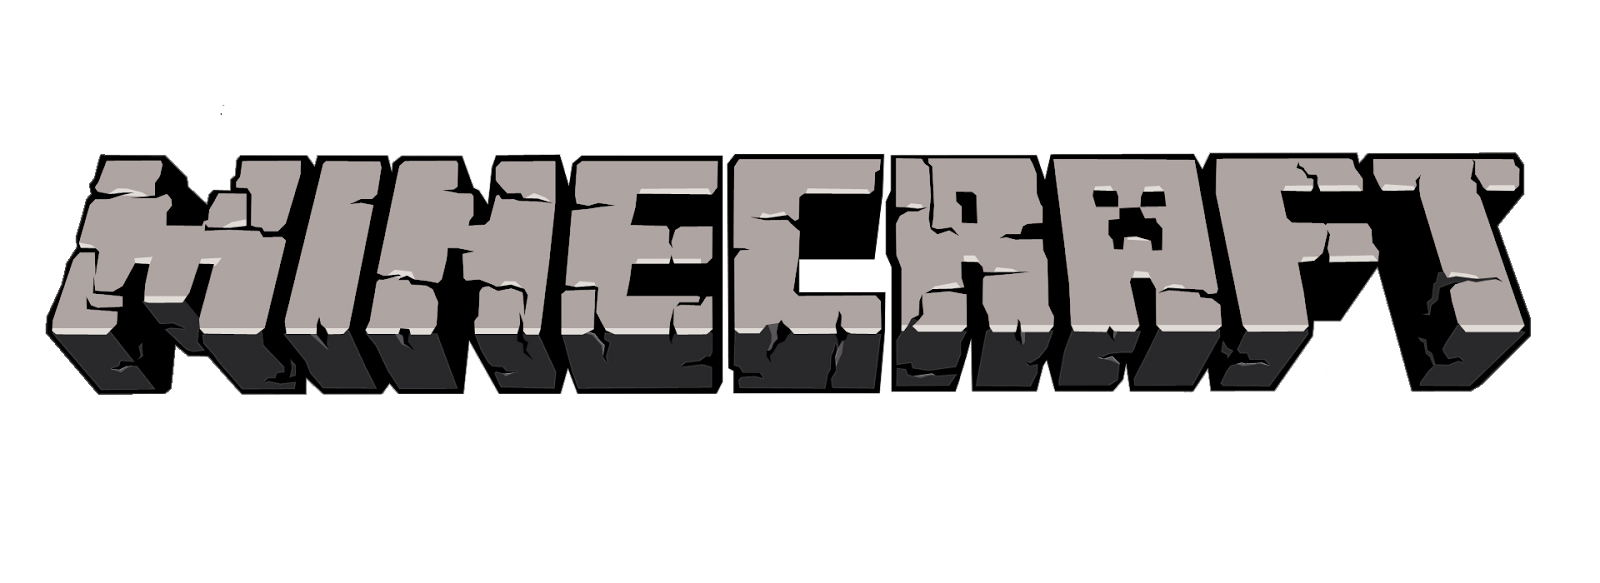 graphic stock Logo free on dumielauxepices. Minecraft clipart black and white